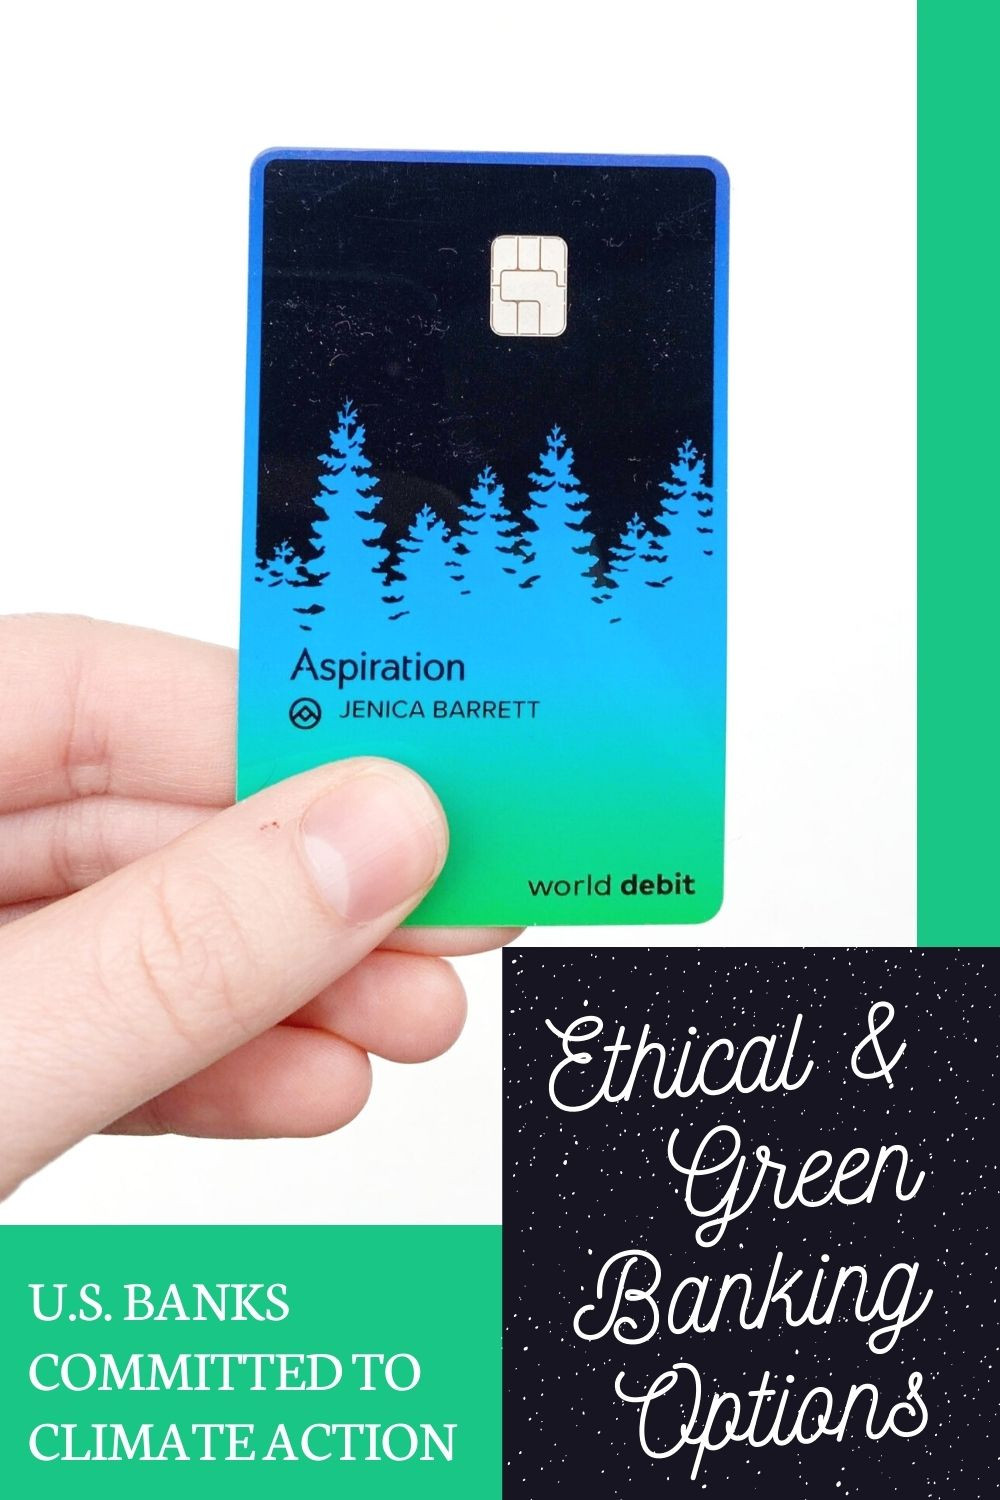 ethical and green banking options pinterest pin